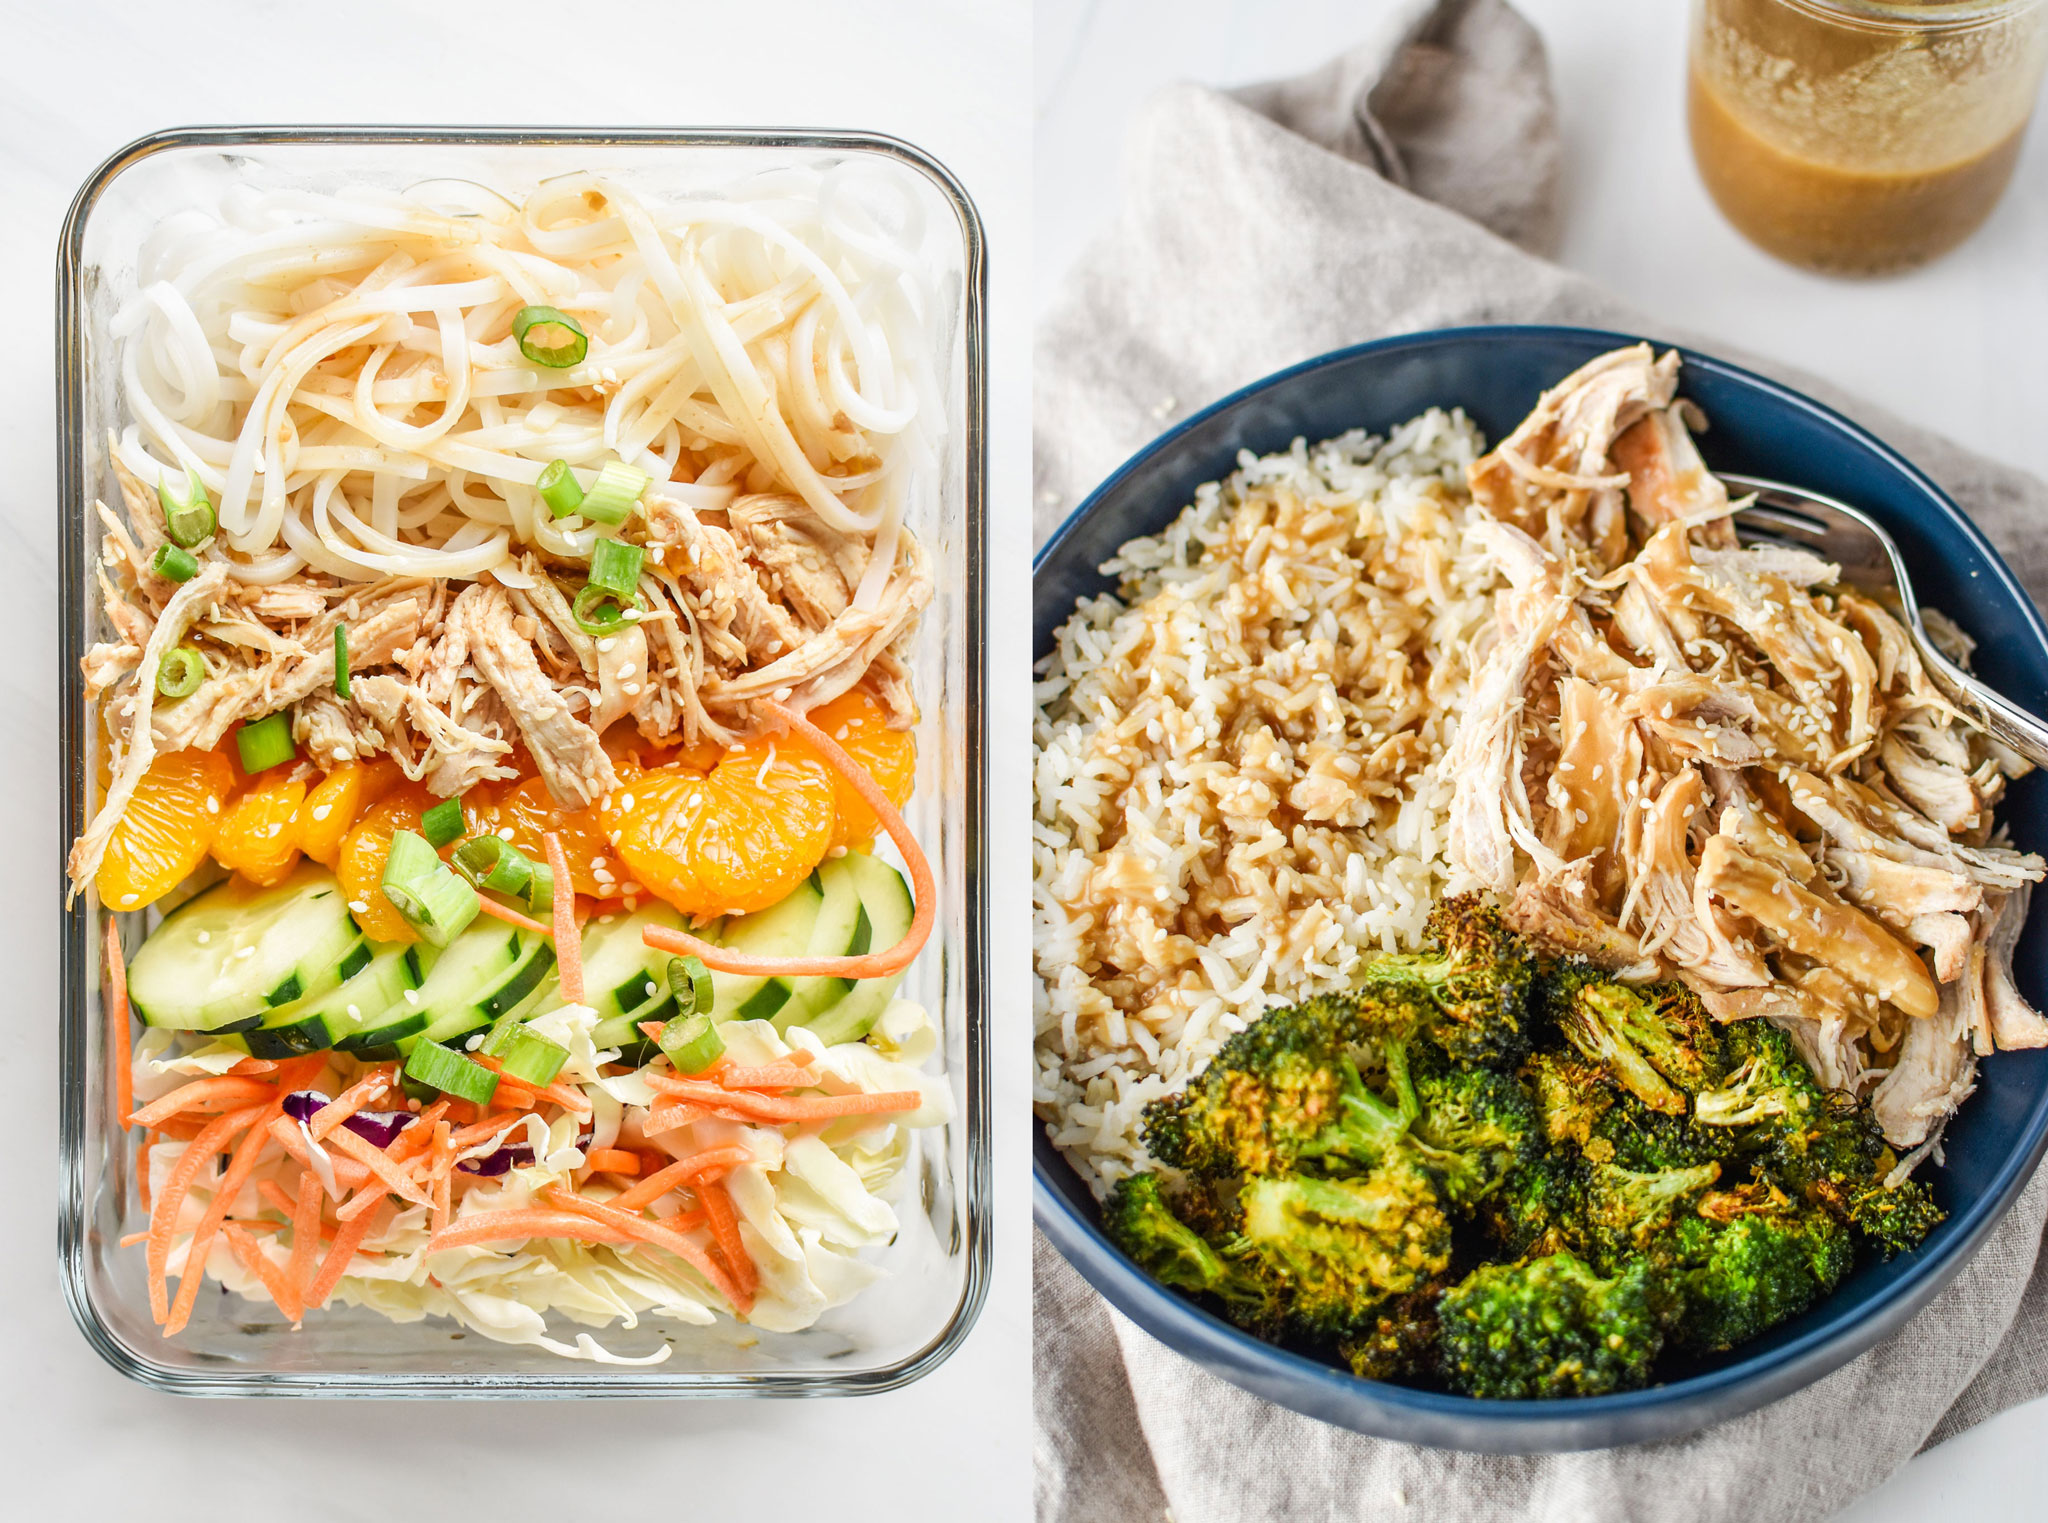 Meal ideas for the sesame shredded chicken